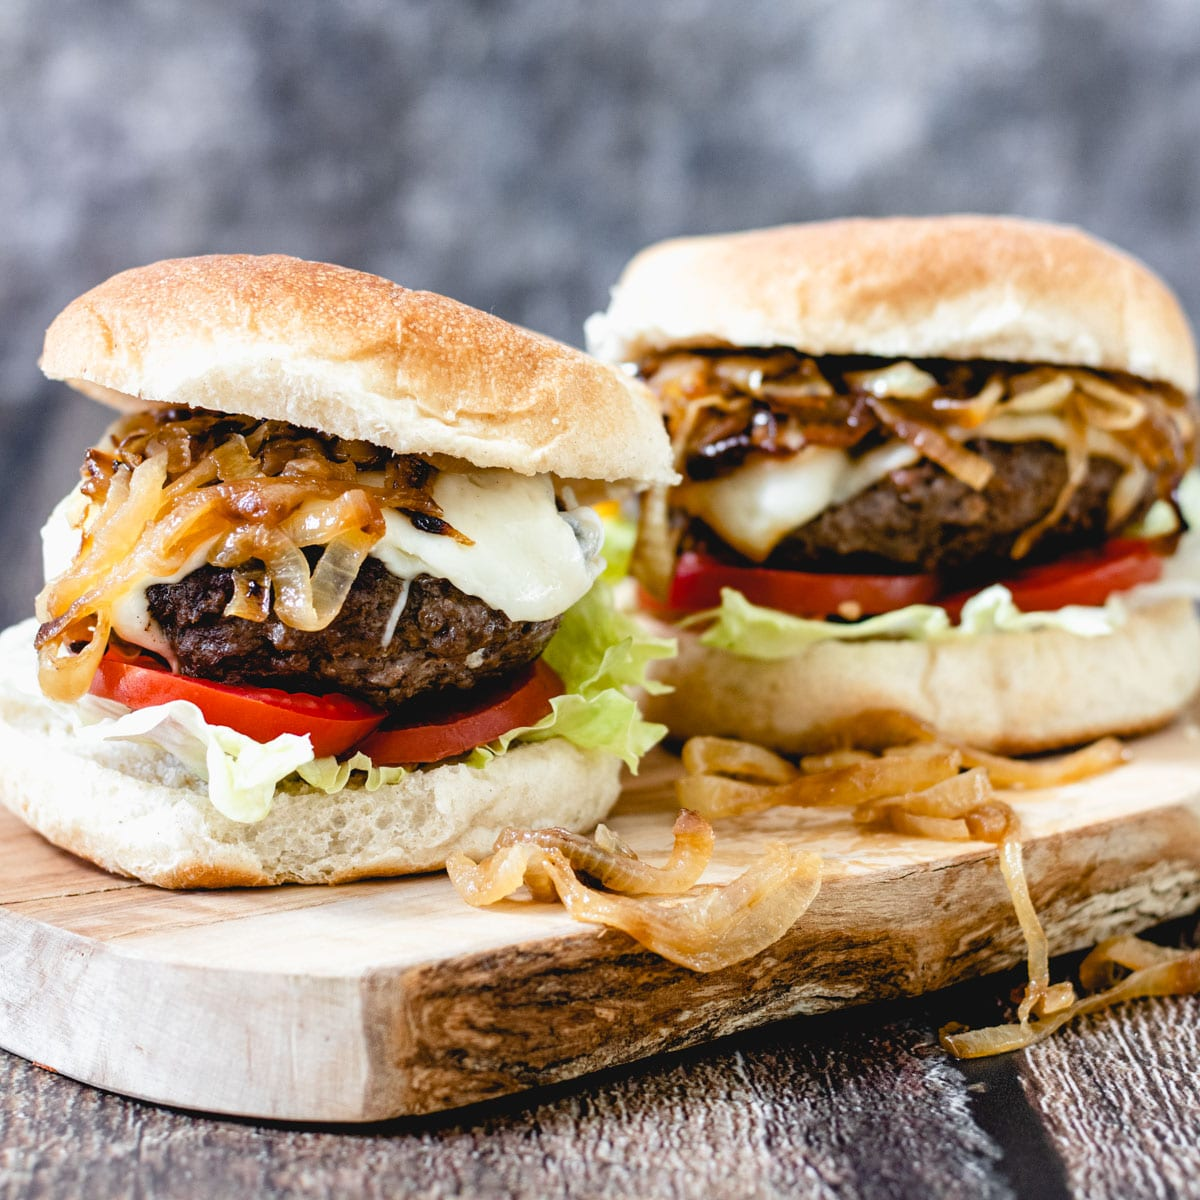 Two elk burgers on a wooden board.